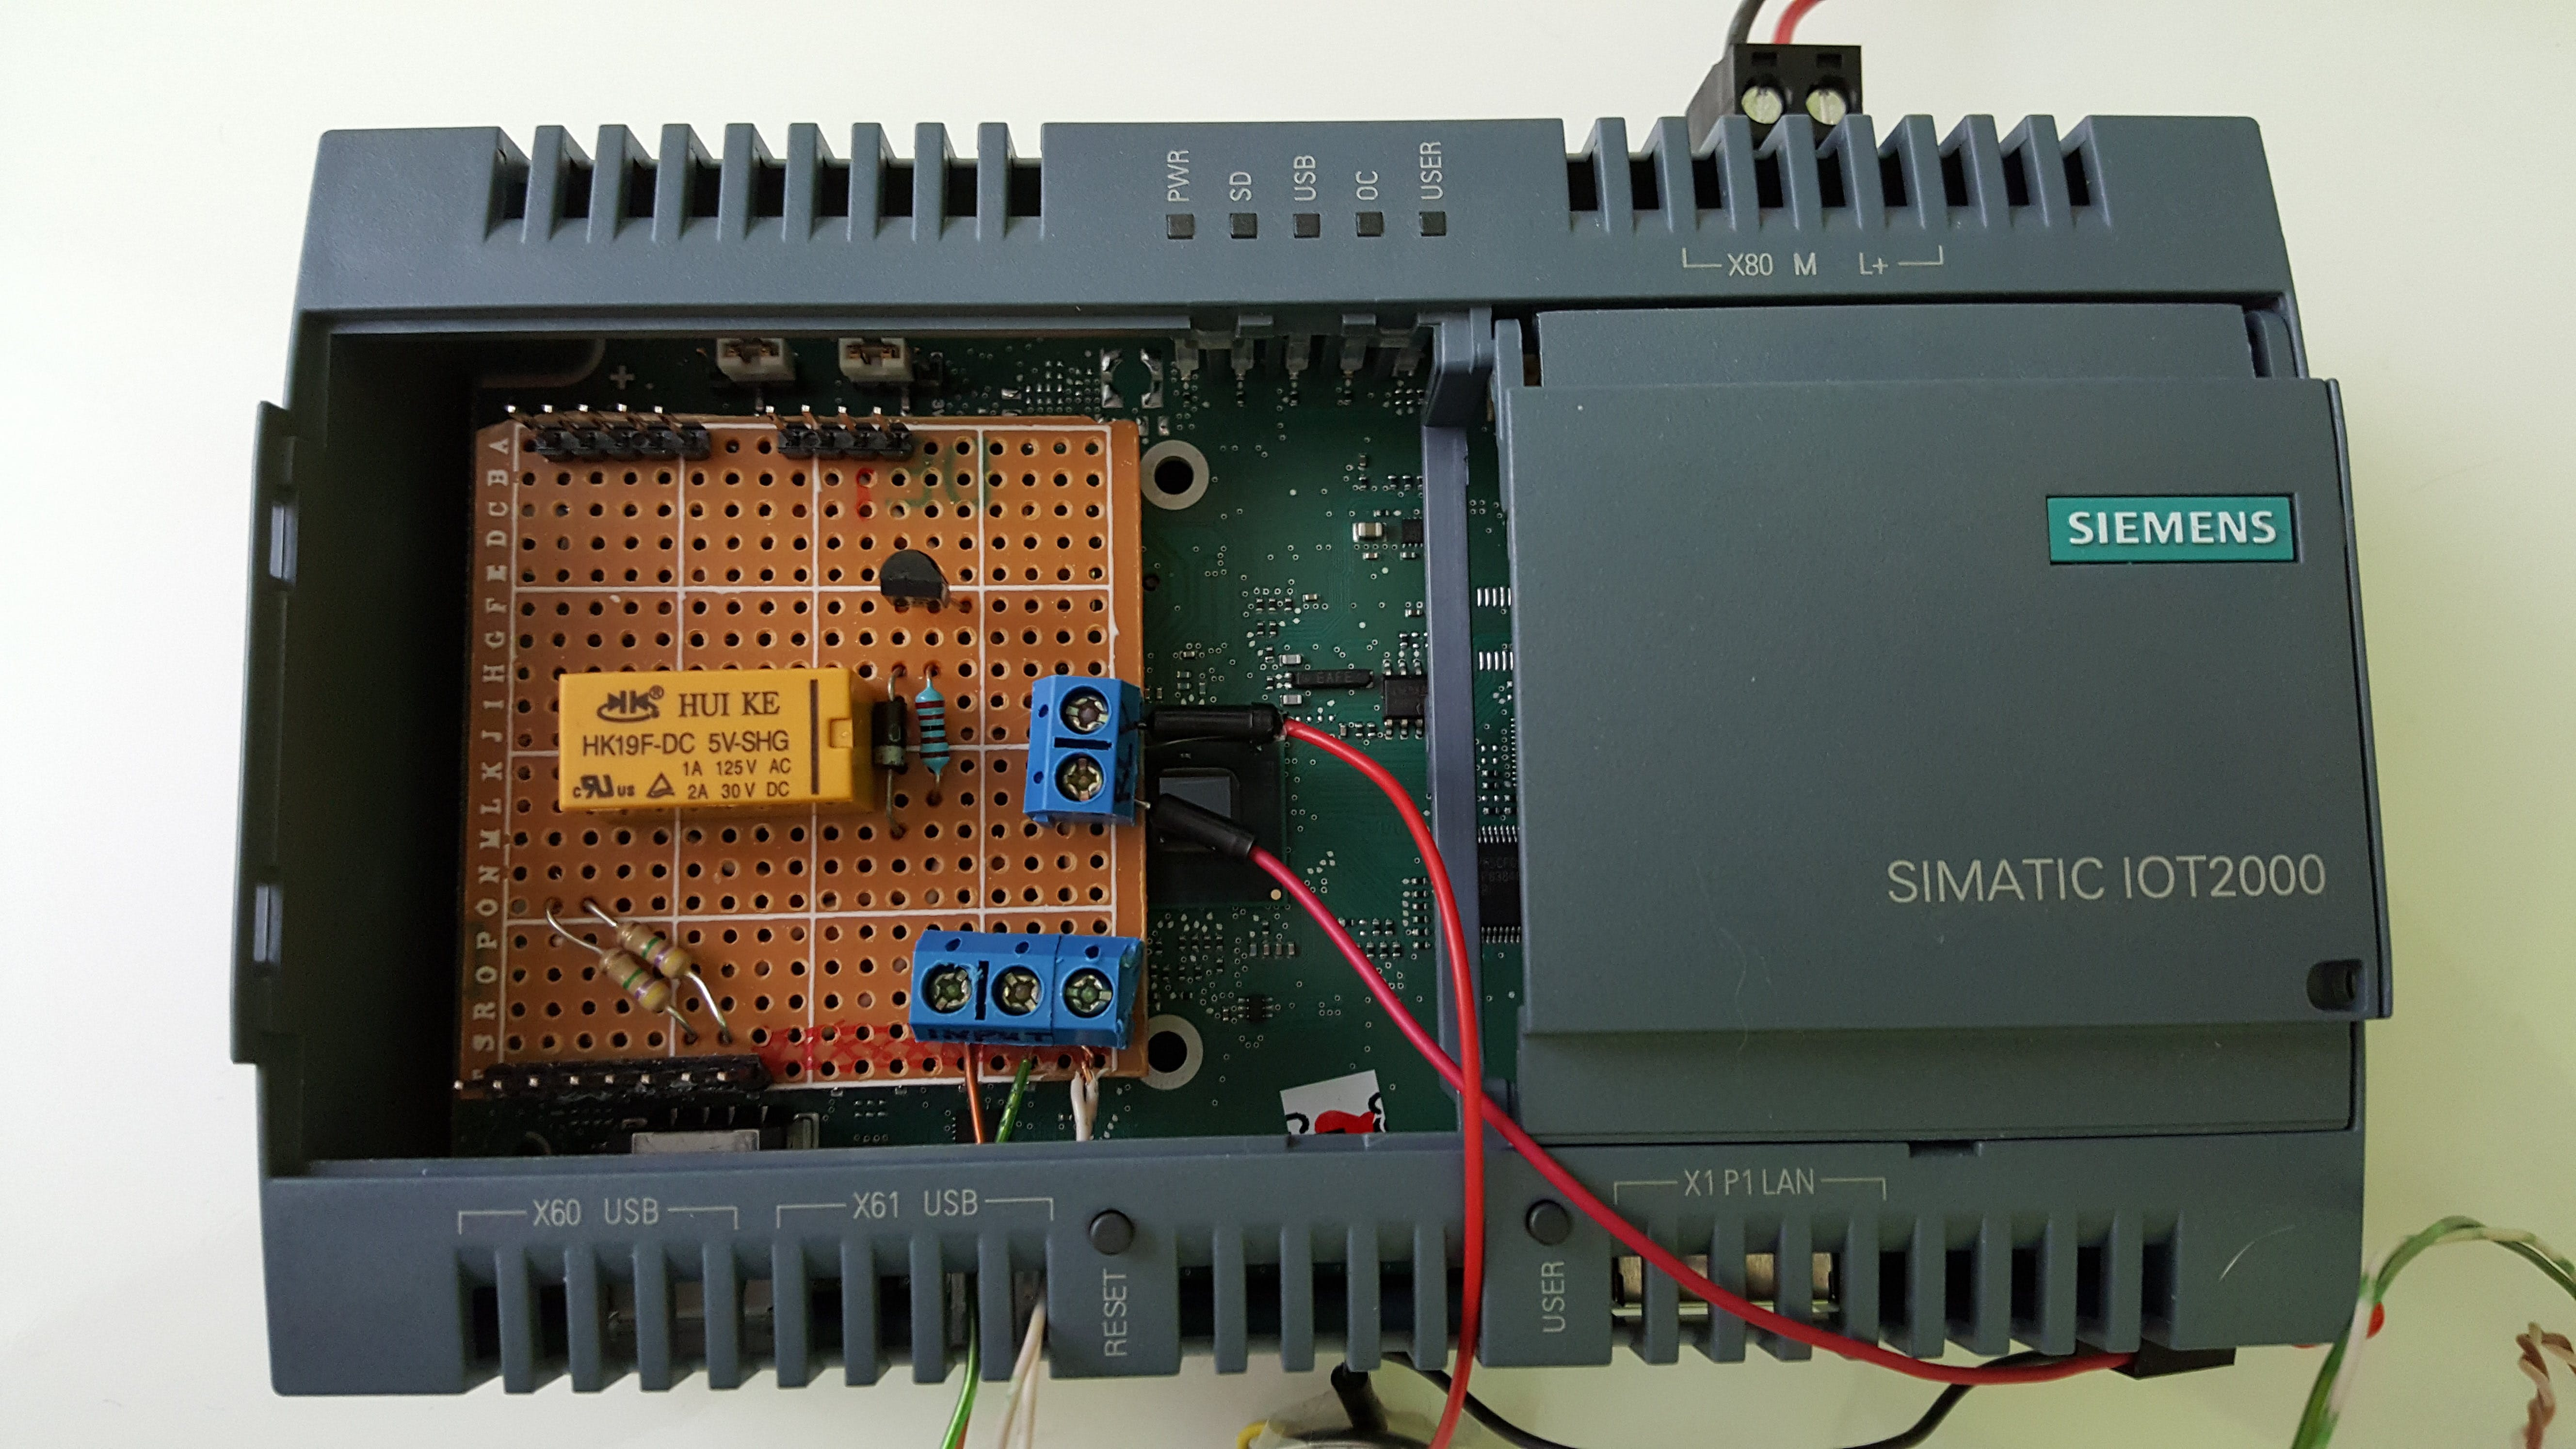 My shield installed on the IOT2020.